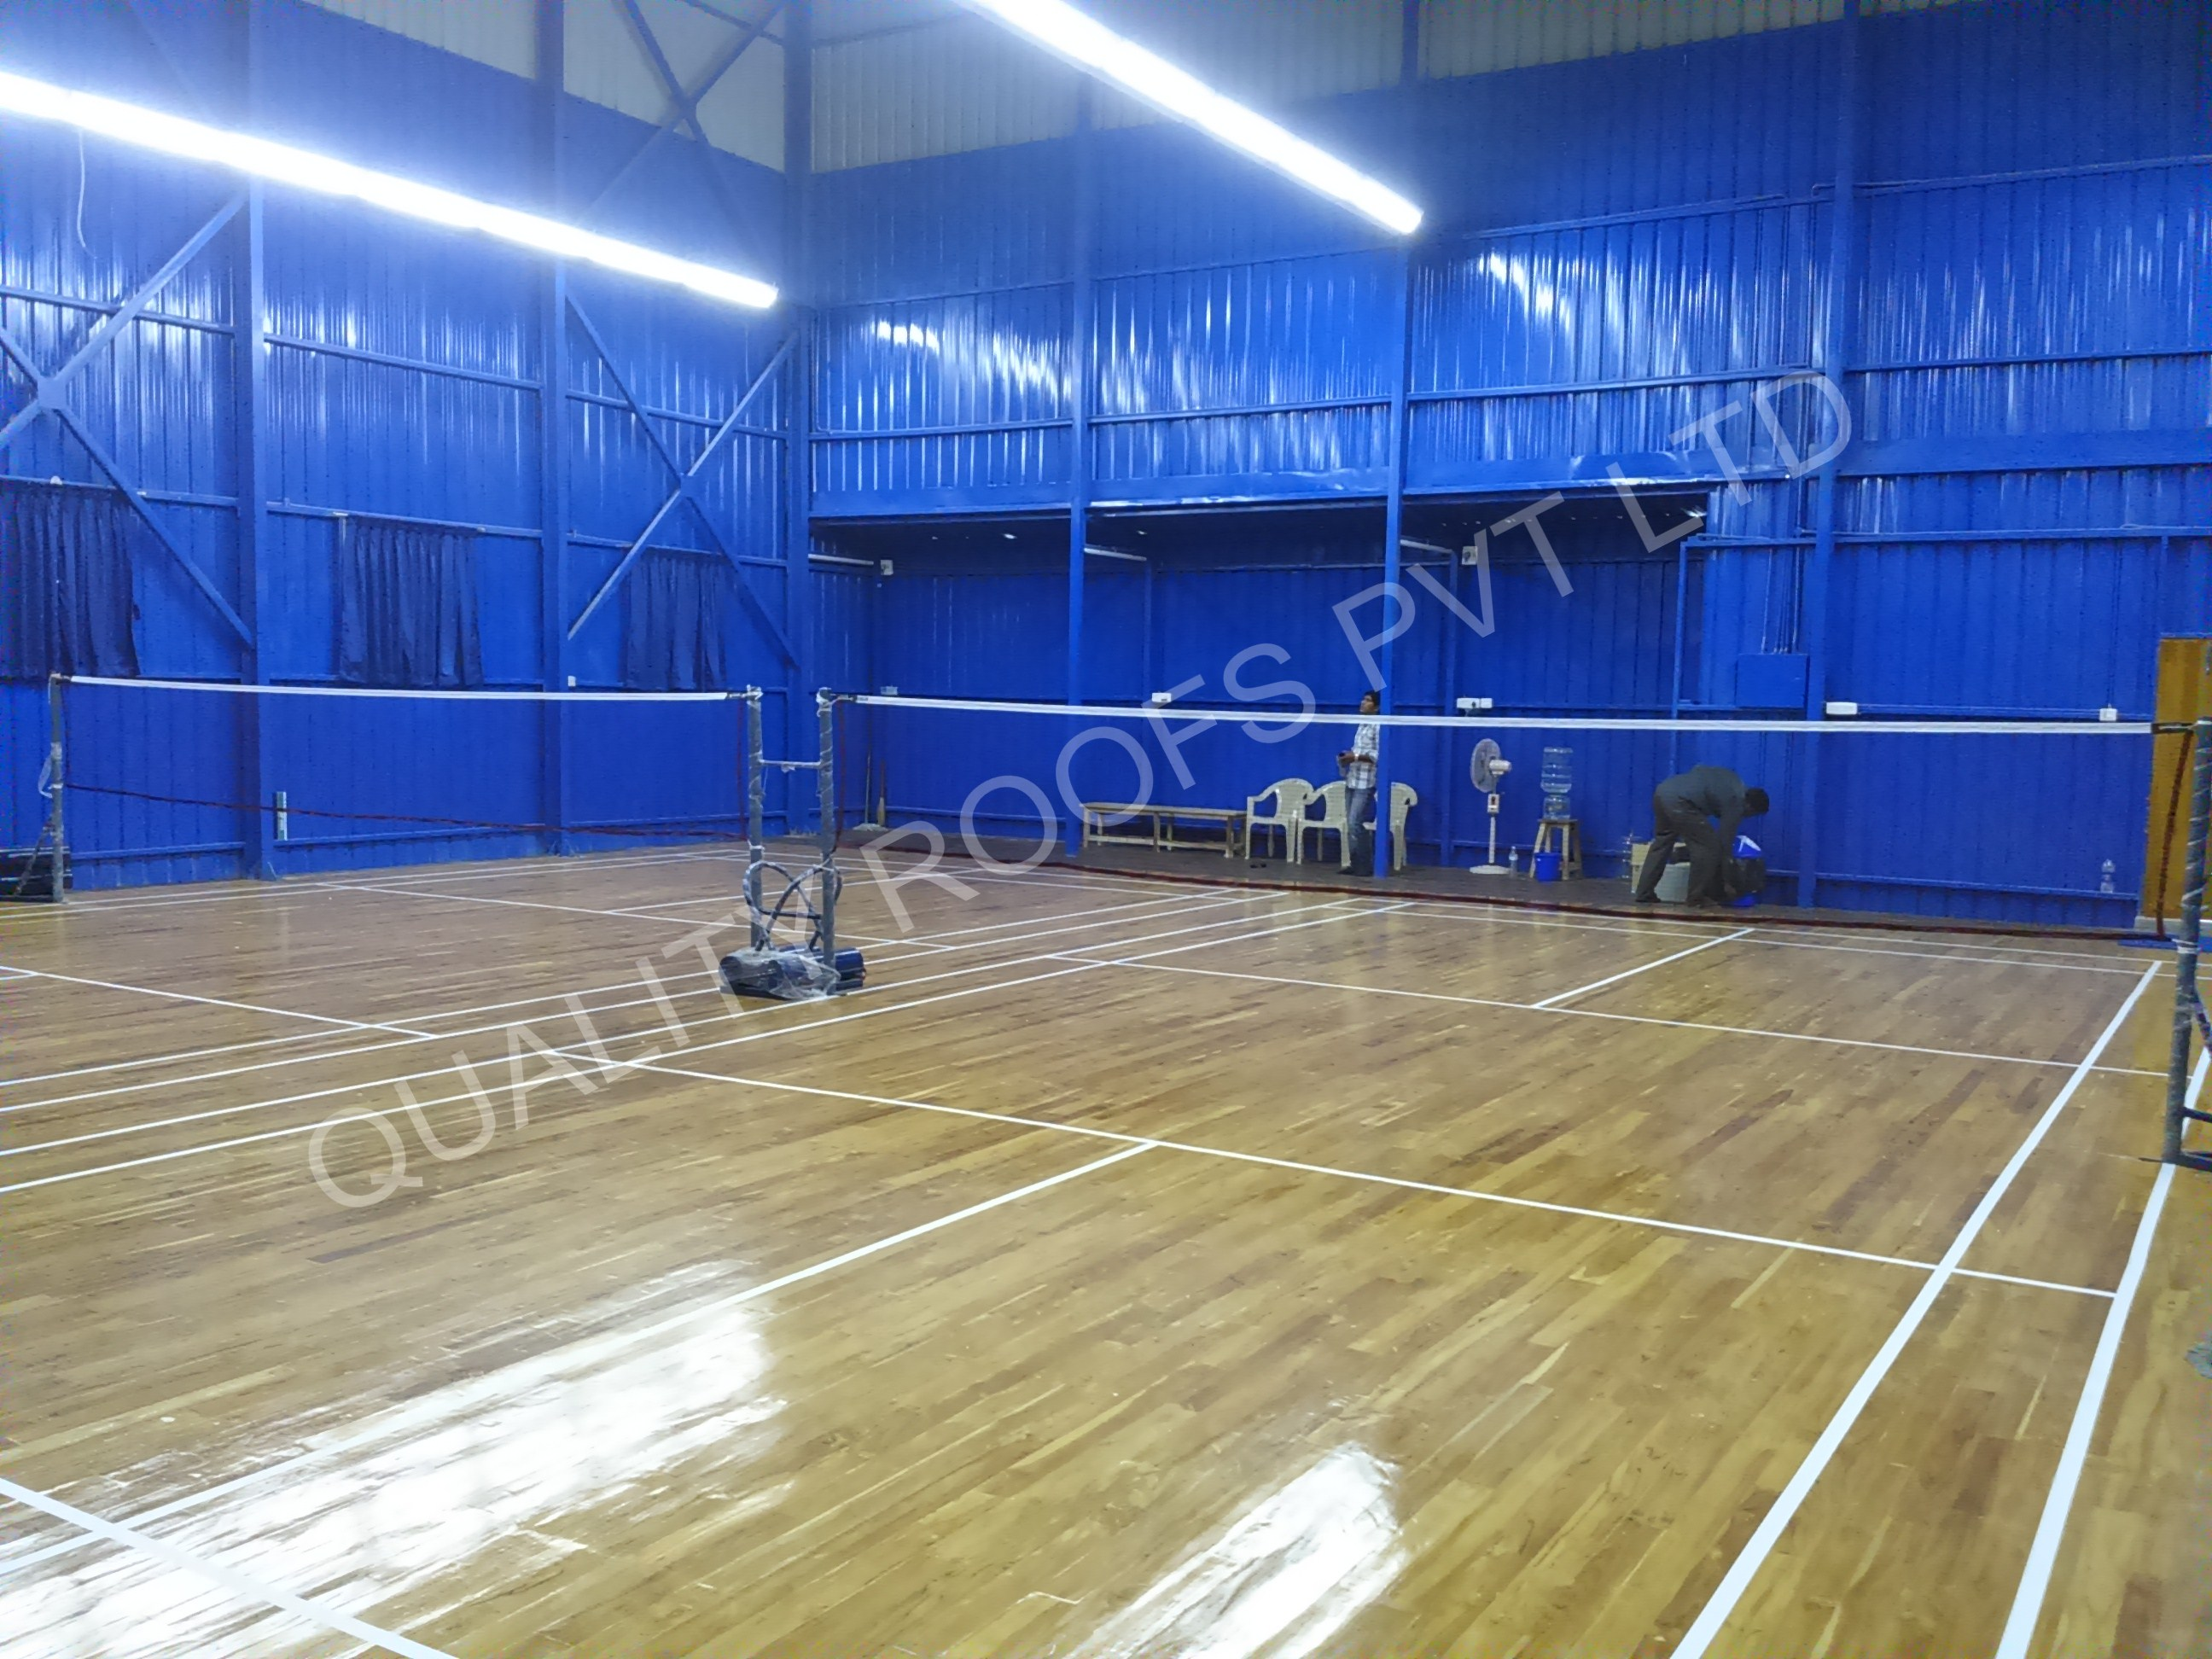 Badminton Court Construction Services In Chennai               We are the Leading Badminton Court Construction Services In Chennai.we are giving service for all Roofing In Chennai and also we are the leading Roofing Dealers In Chennai. we fabricate all Metal Roofing In Chennai at least rate with best quality Roofing Material.